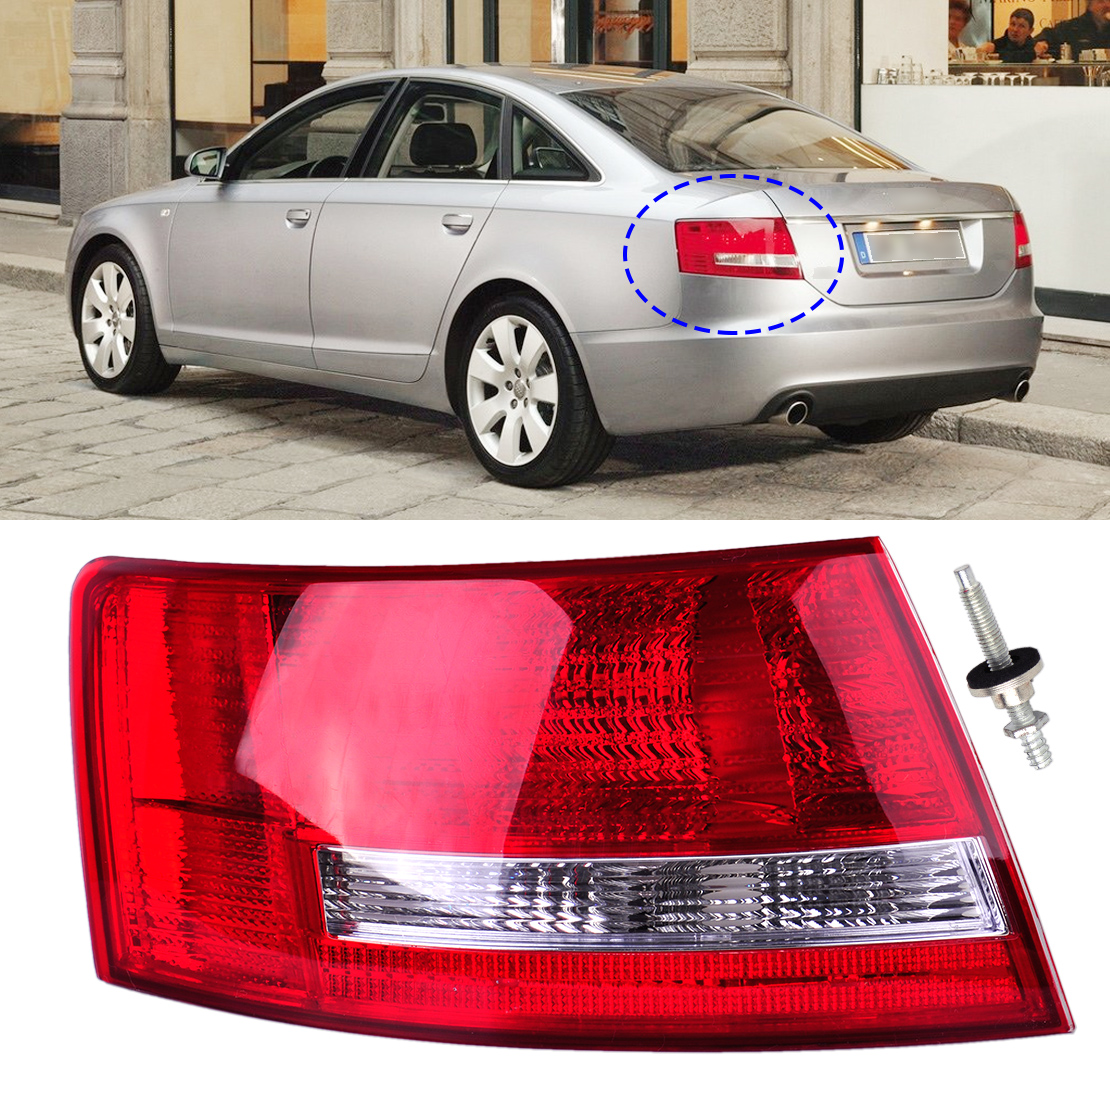 medium resolution of online shop citall left tail light assembly lamp housing without bulb for audi a6 quattro sedan 2005 2006 2007 2008 4f5945095l 4f5945095d aliexpress